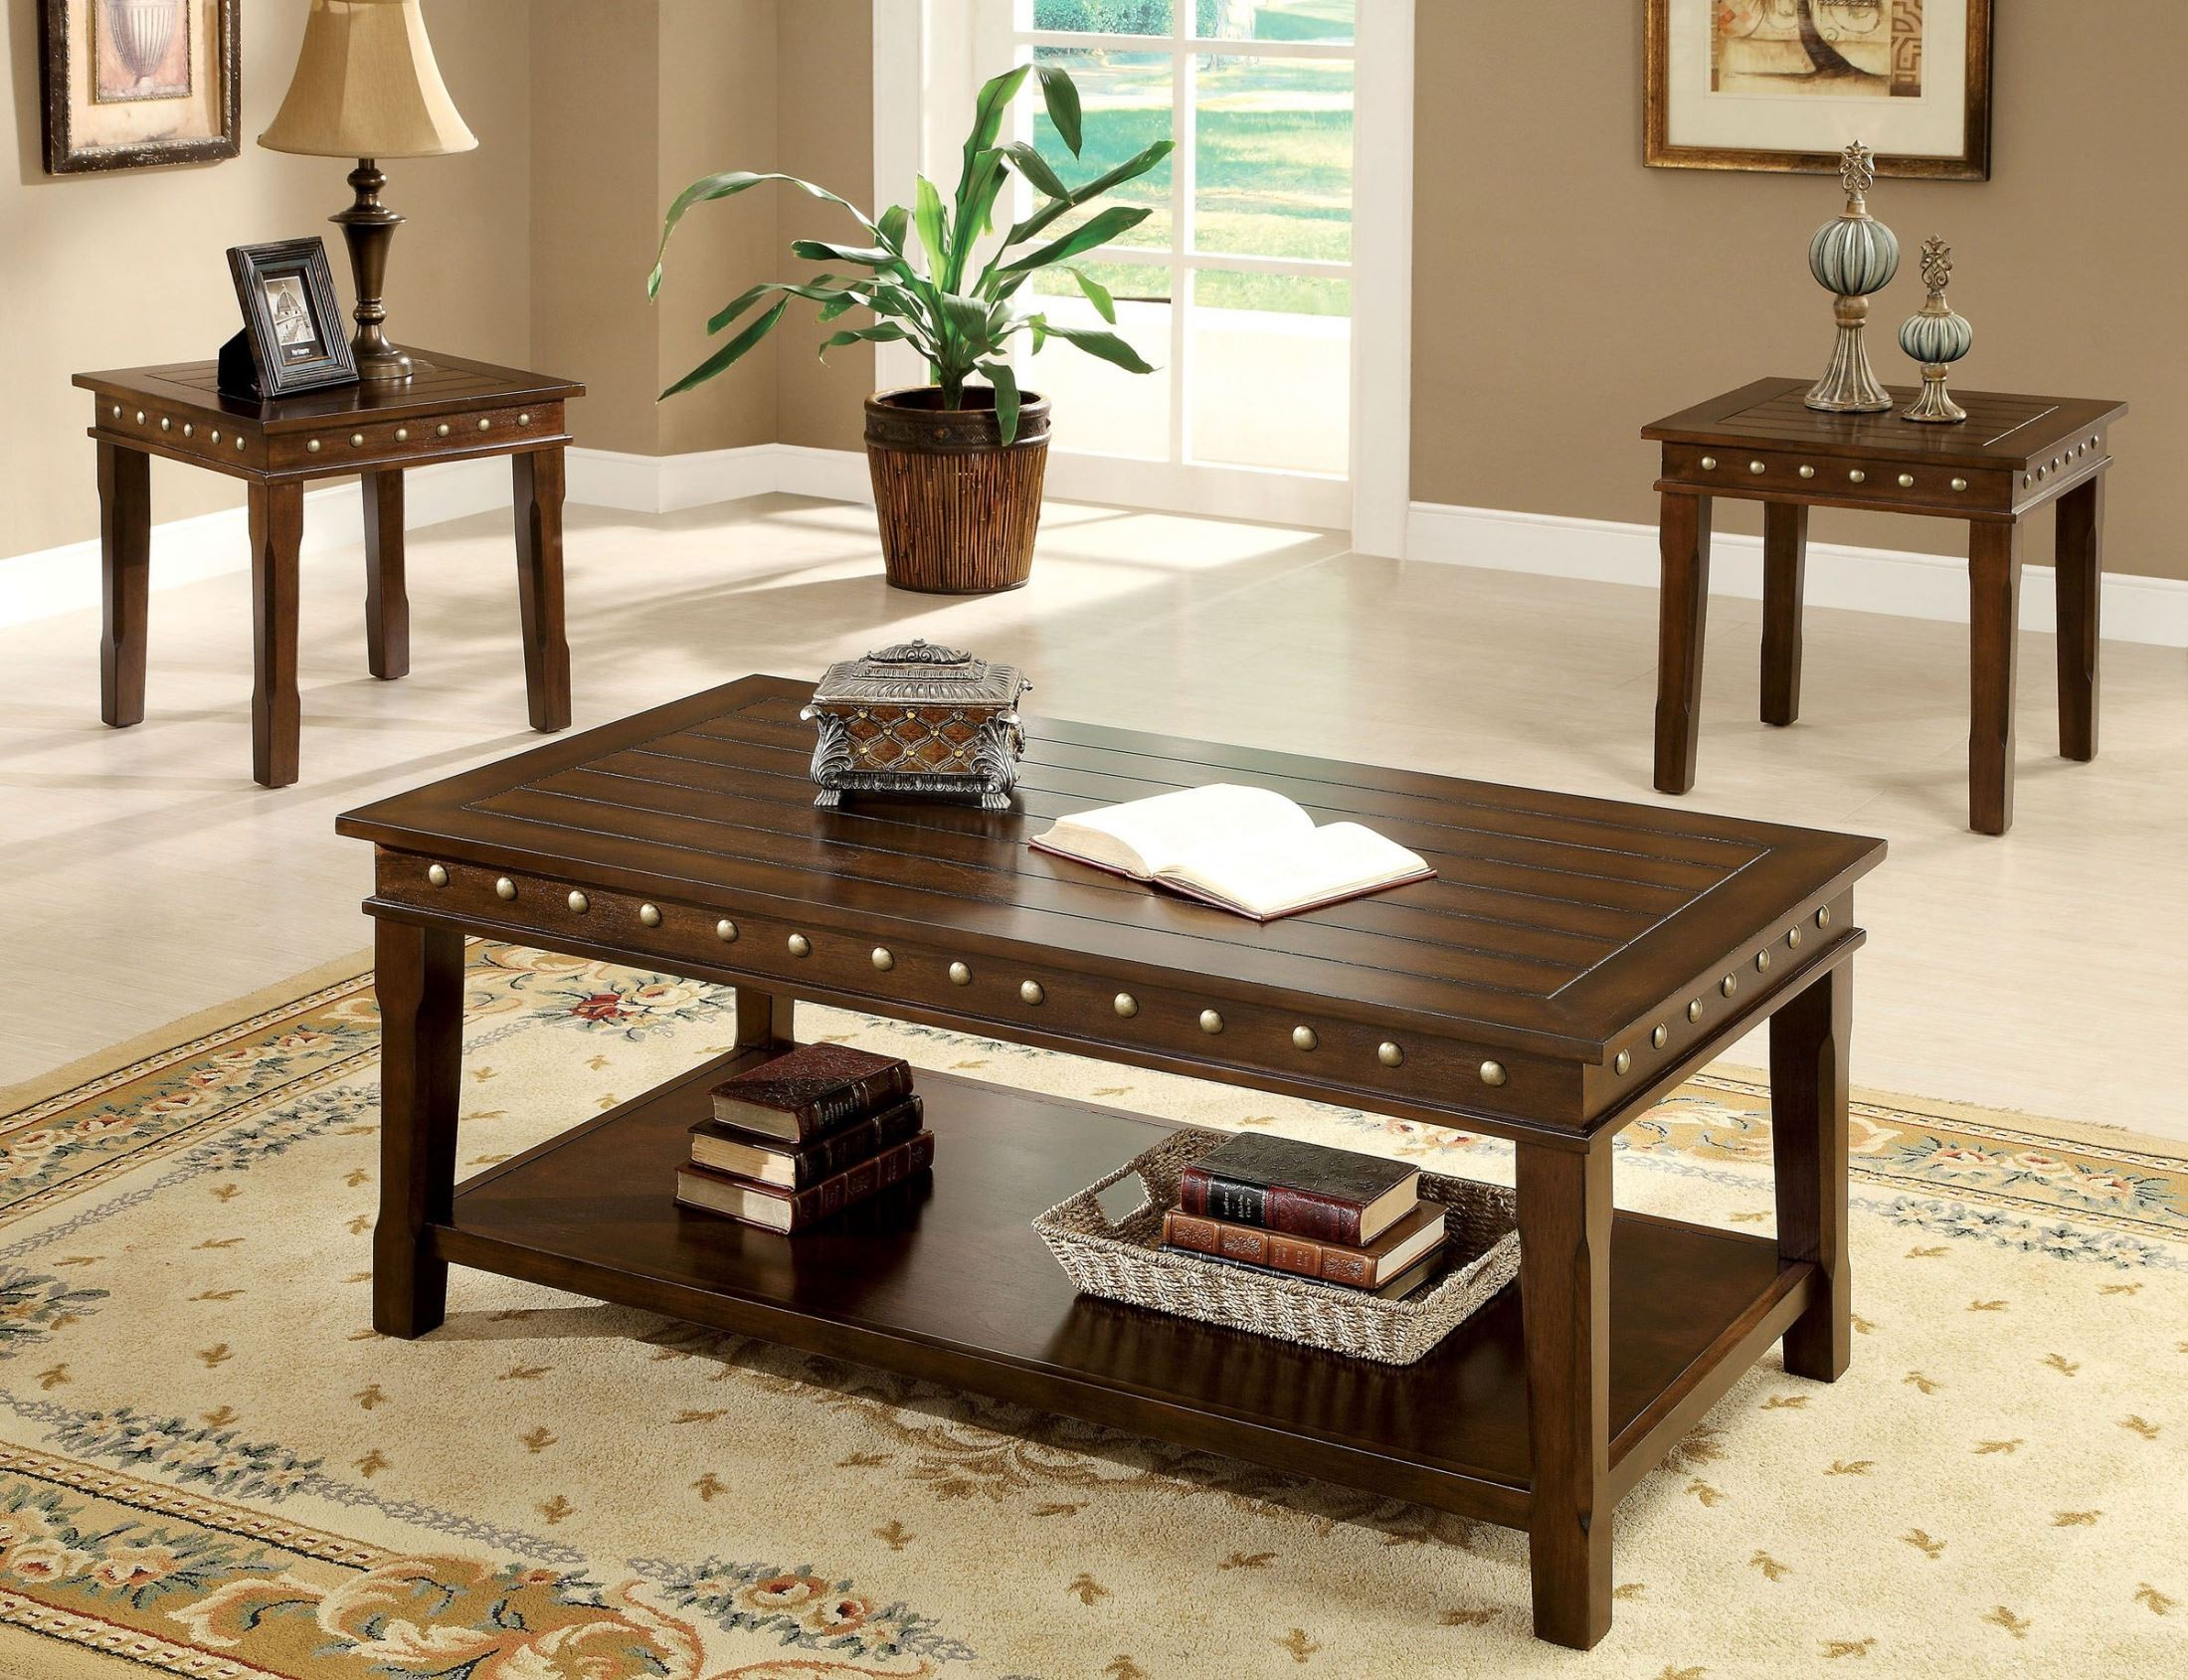 Fenwick 3 Piece Occasional Table Set : 3 piece occasional table set - pezcame.com